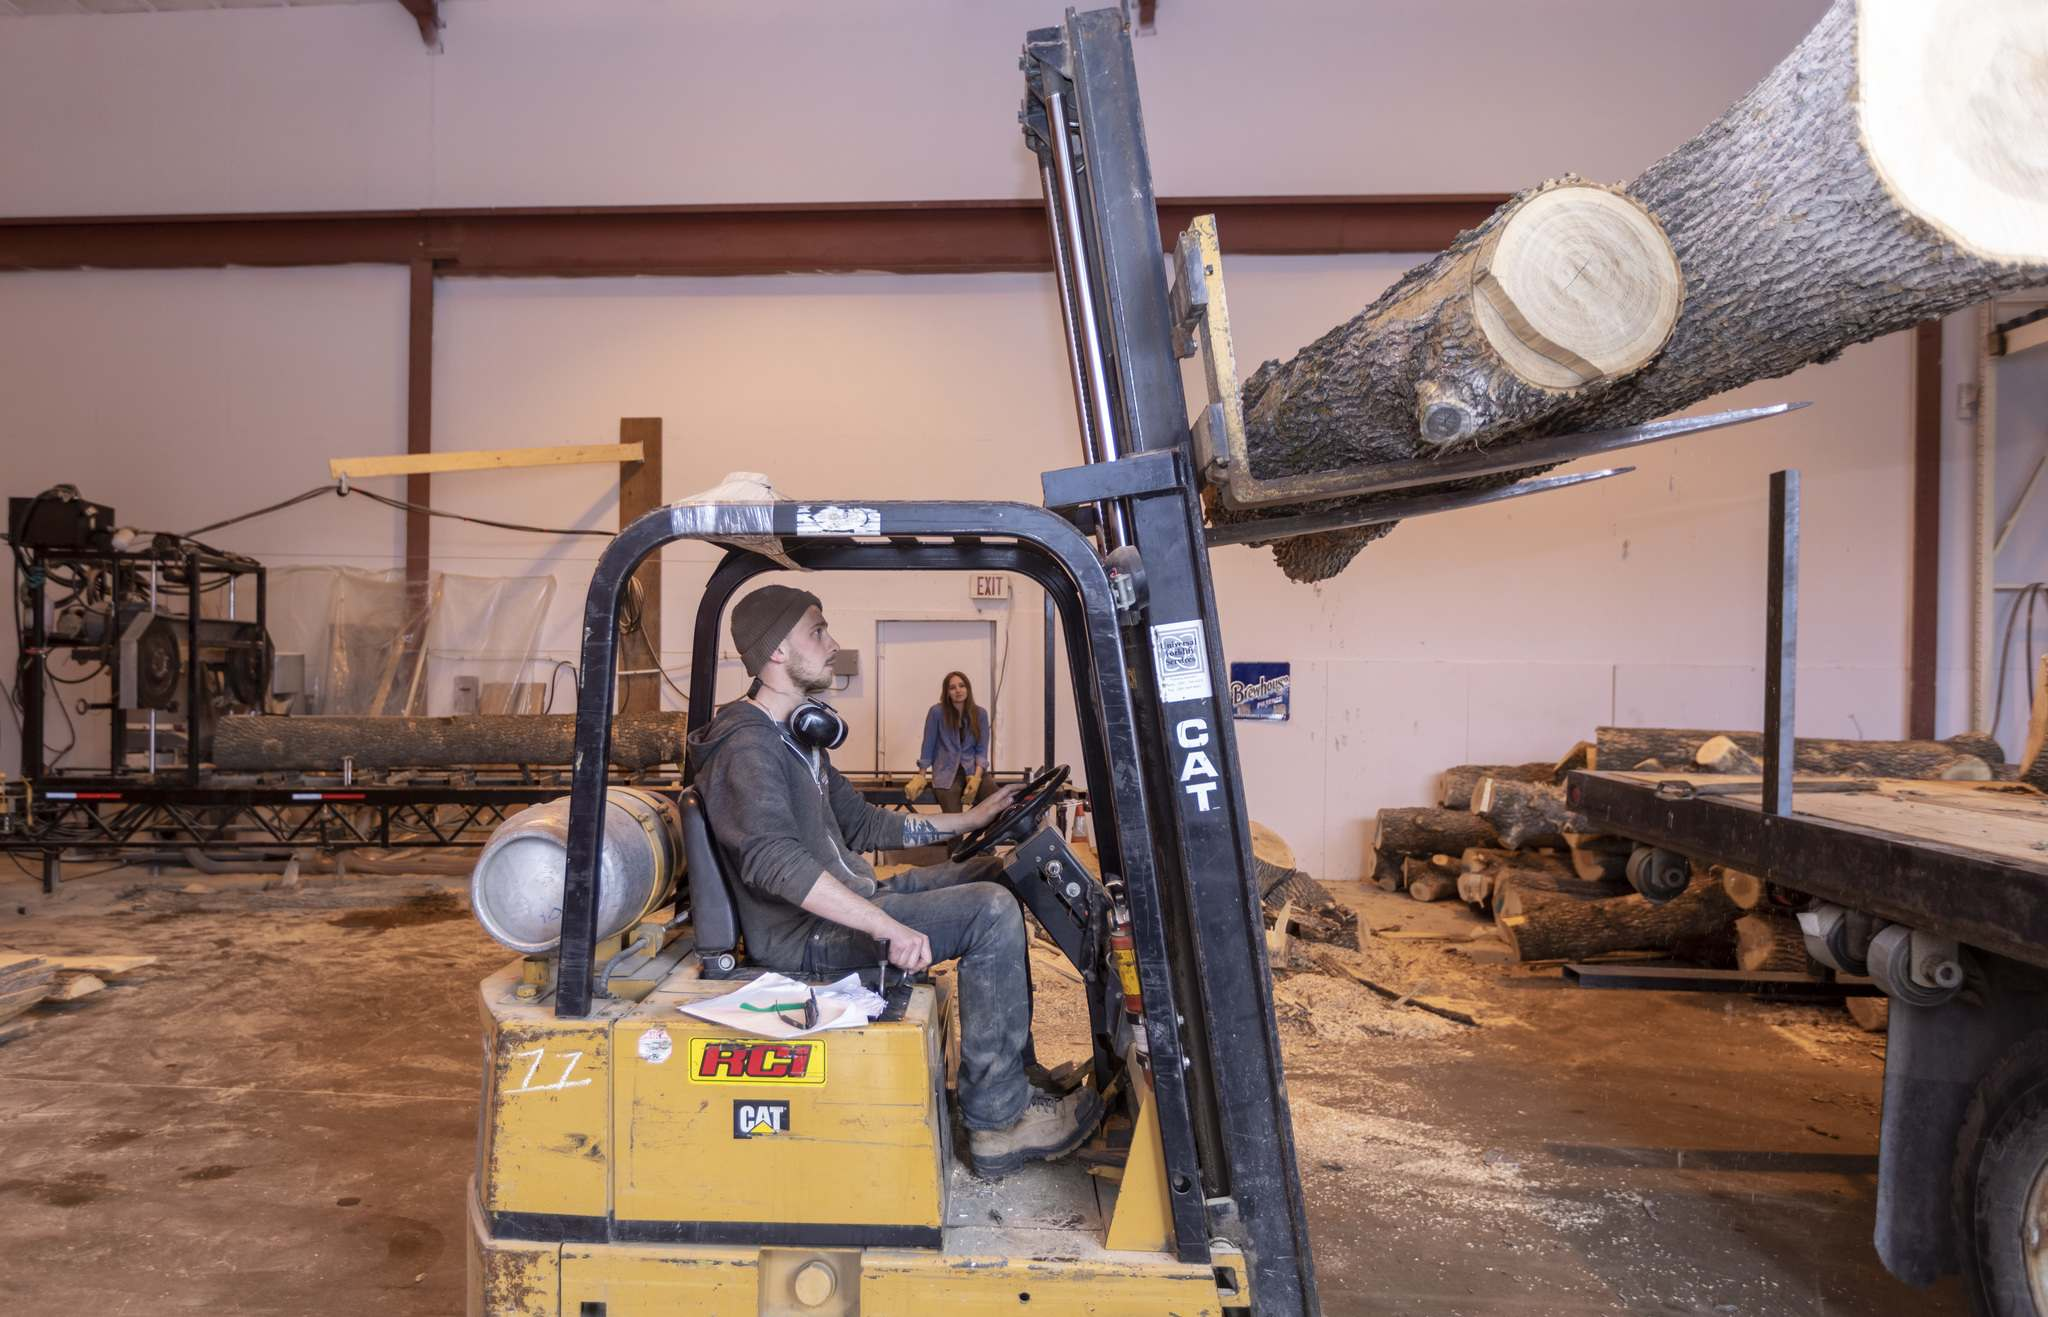 <p>McGarry uses a forklift he found in the building he rented to unload trees to be processed.